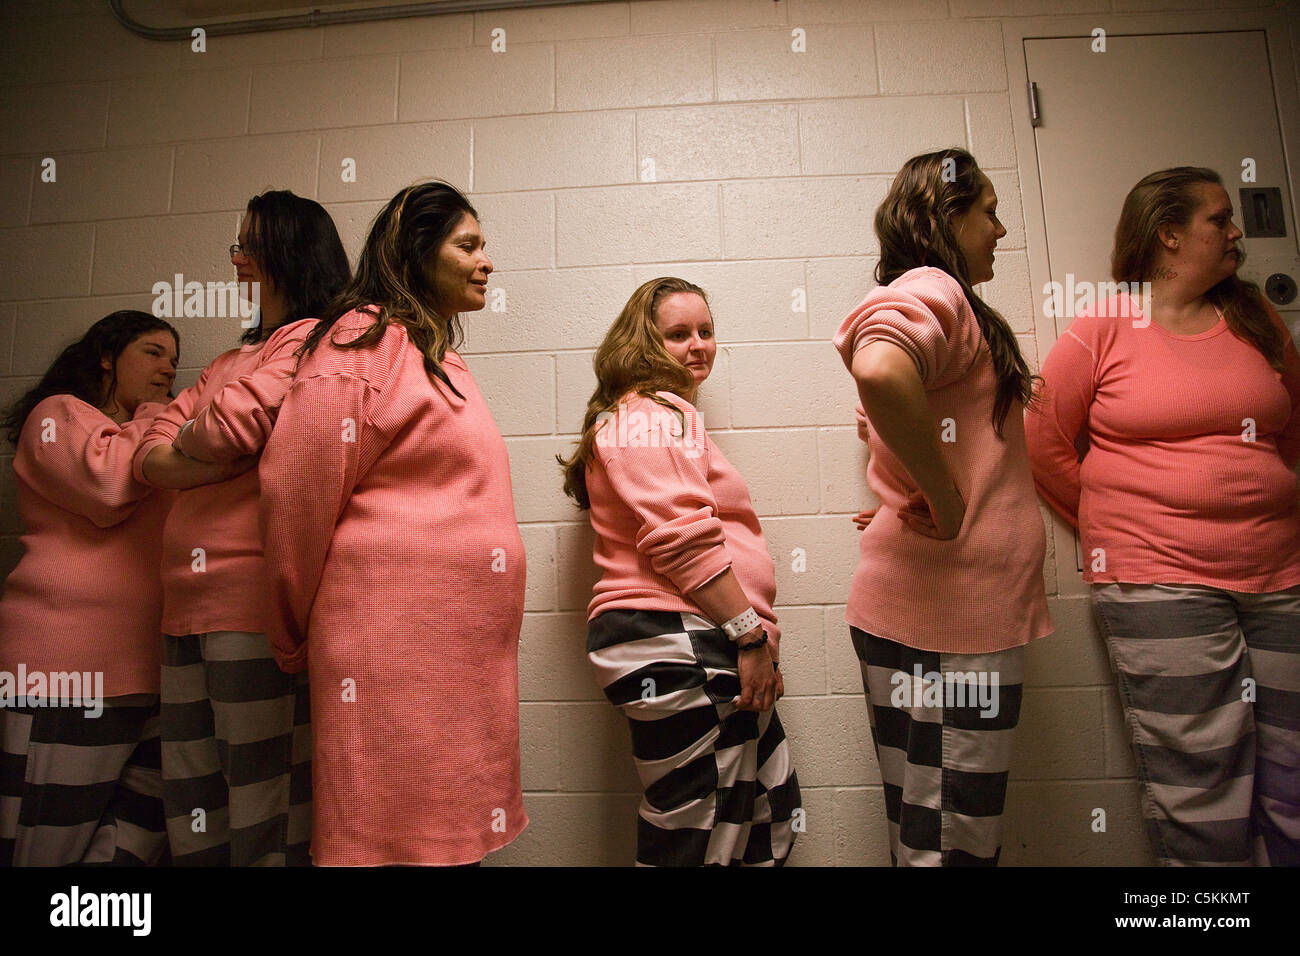 Female inmates wait to be searched for contraband after chain gang duty at Estrella Jail in Phoenix Arizona  sc 1 st  Alamy & Female inmates wait to be searched for contraband after chain gang ...